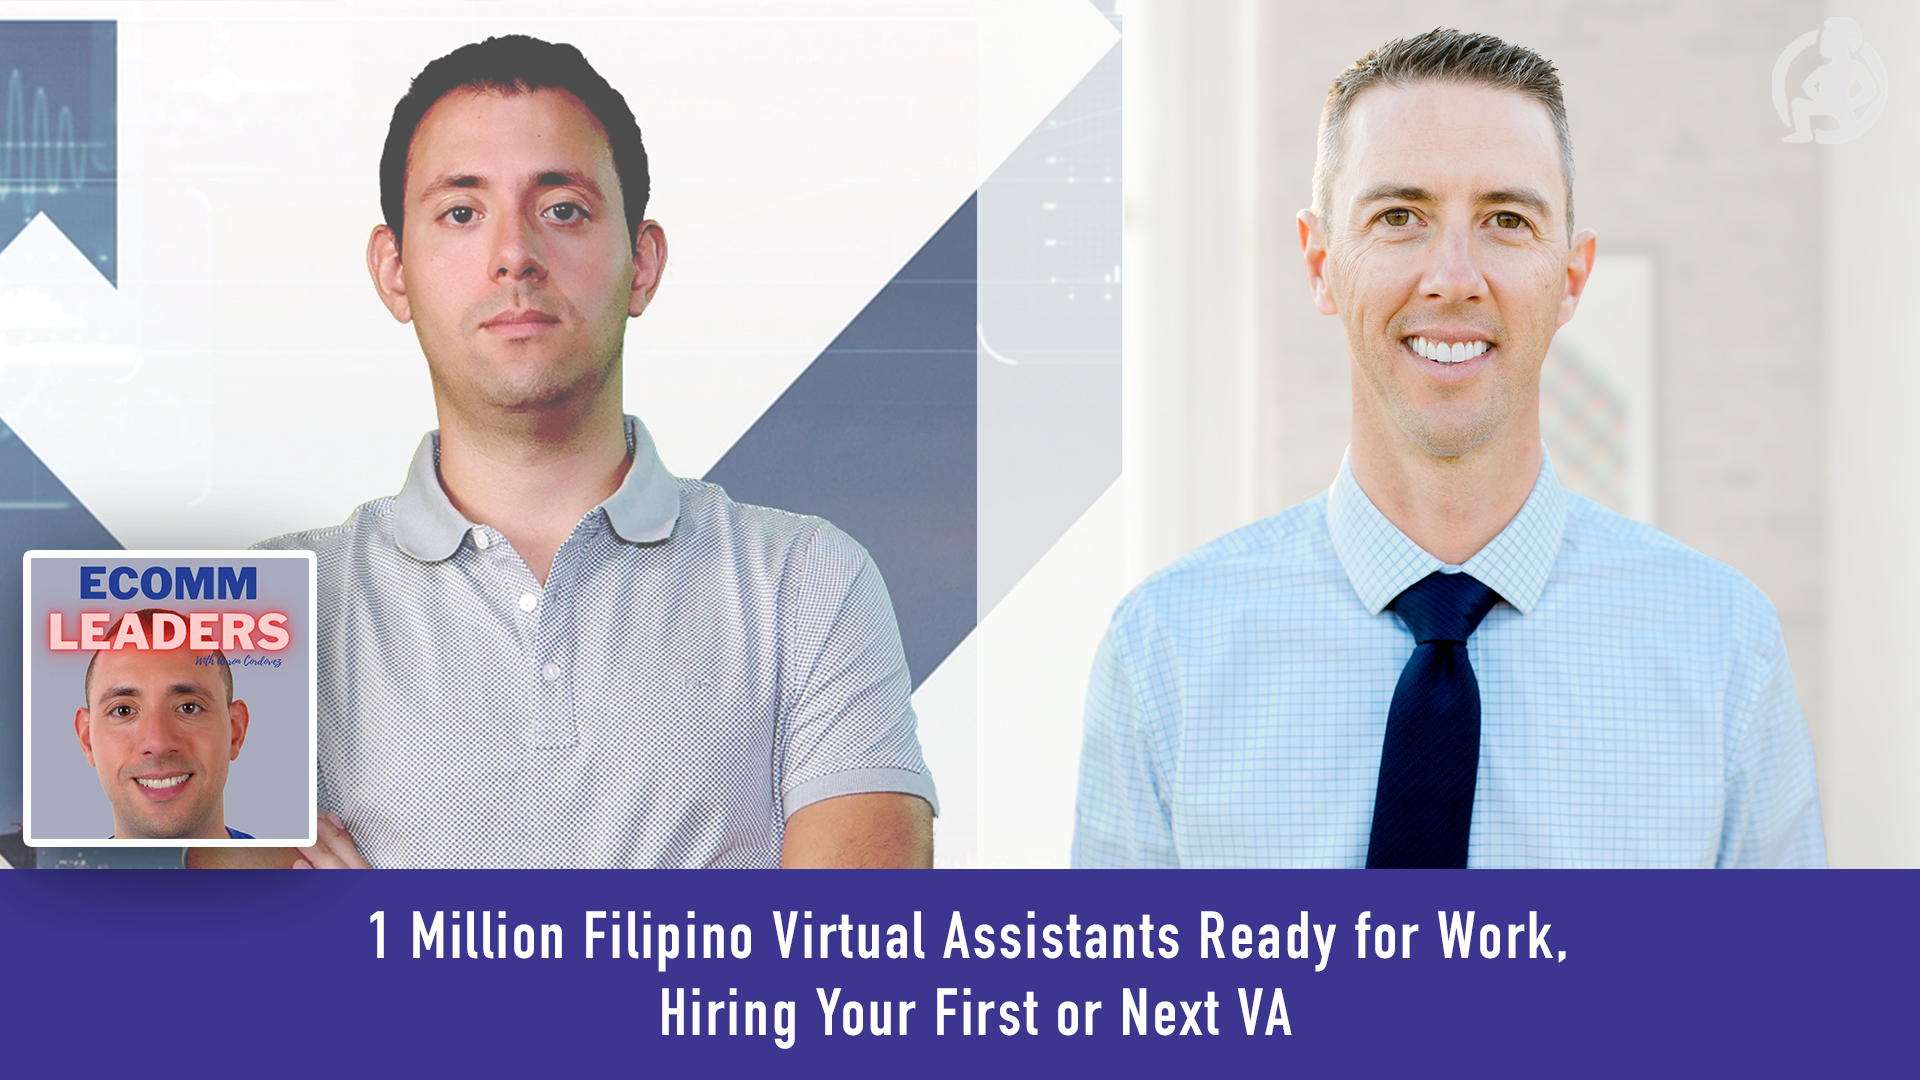 1 Million Filipino Virtual Assistants Ready for Work, Hiring Your First or Next VA